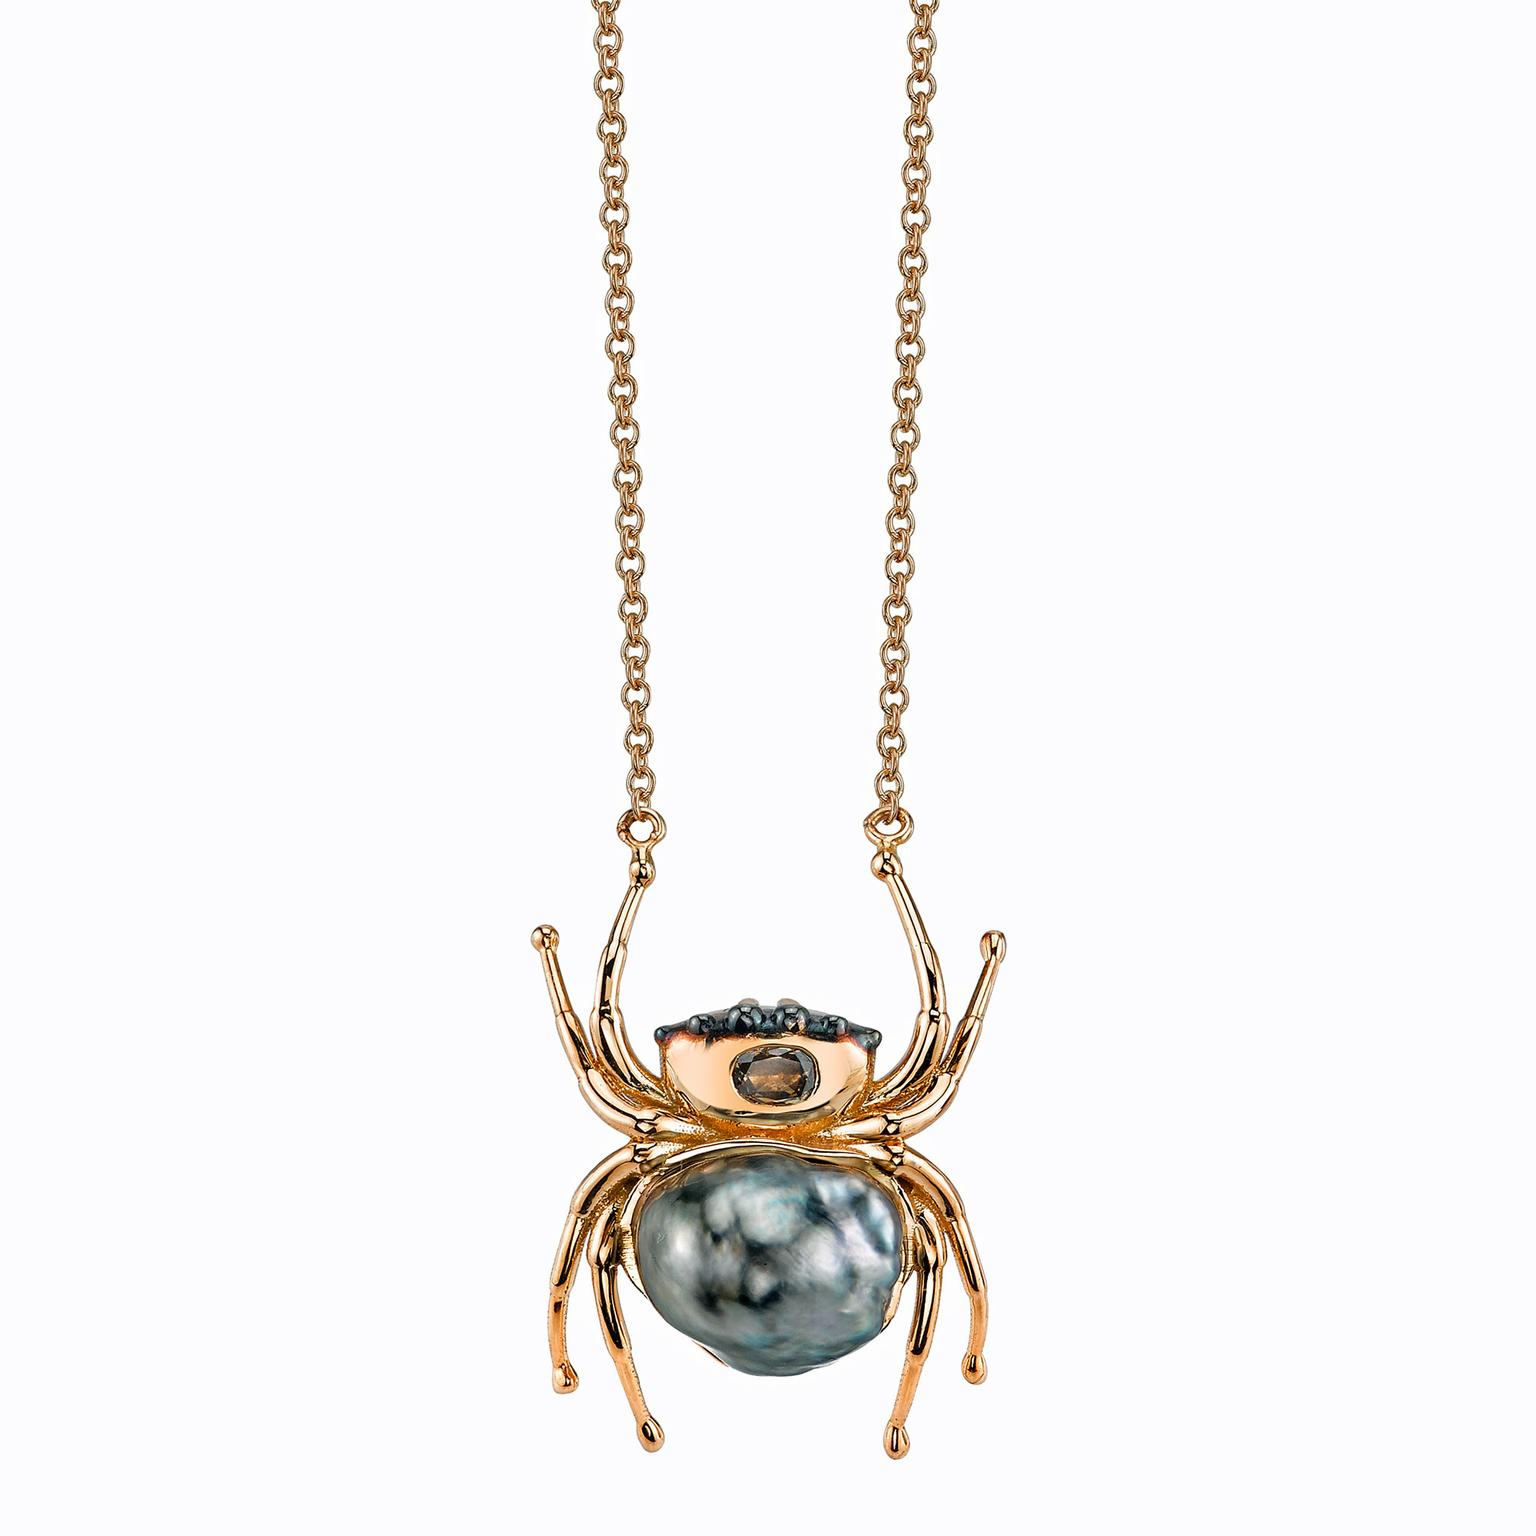 Daniela Villegas spider necklace